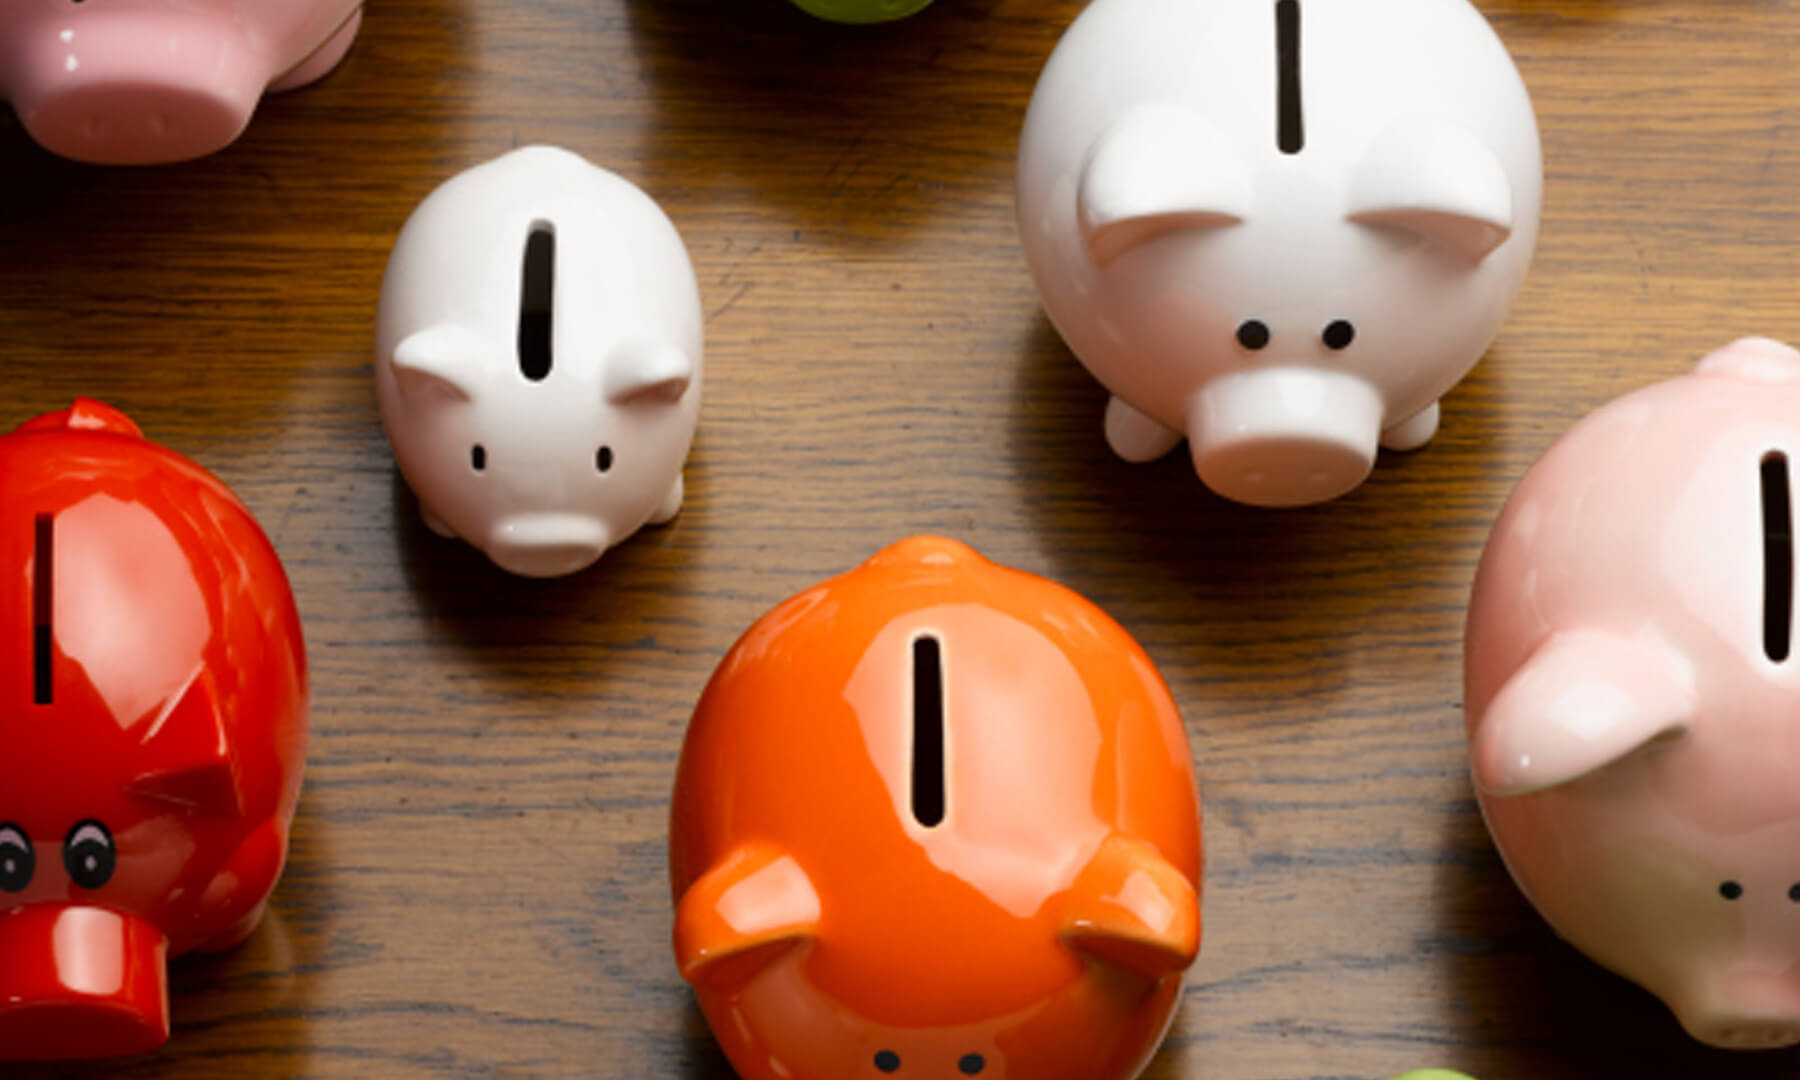 different colored piggy banks on floor